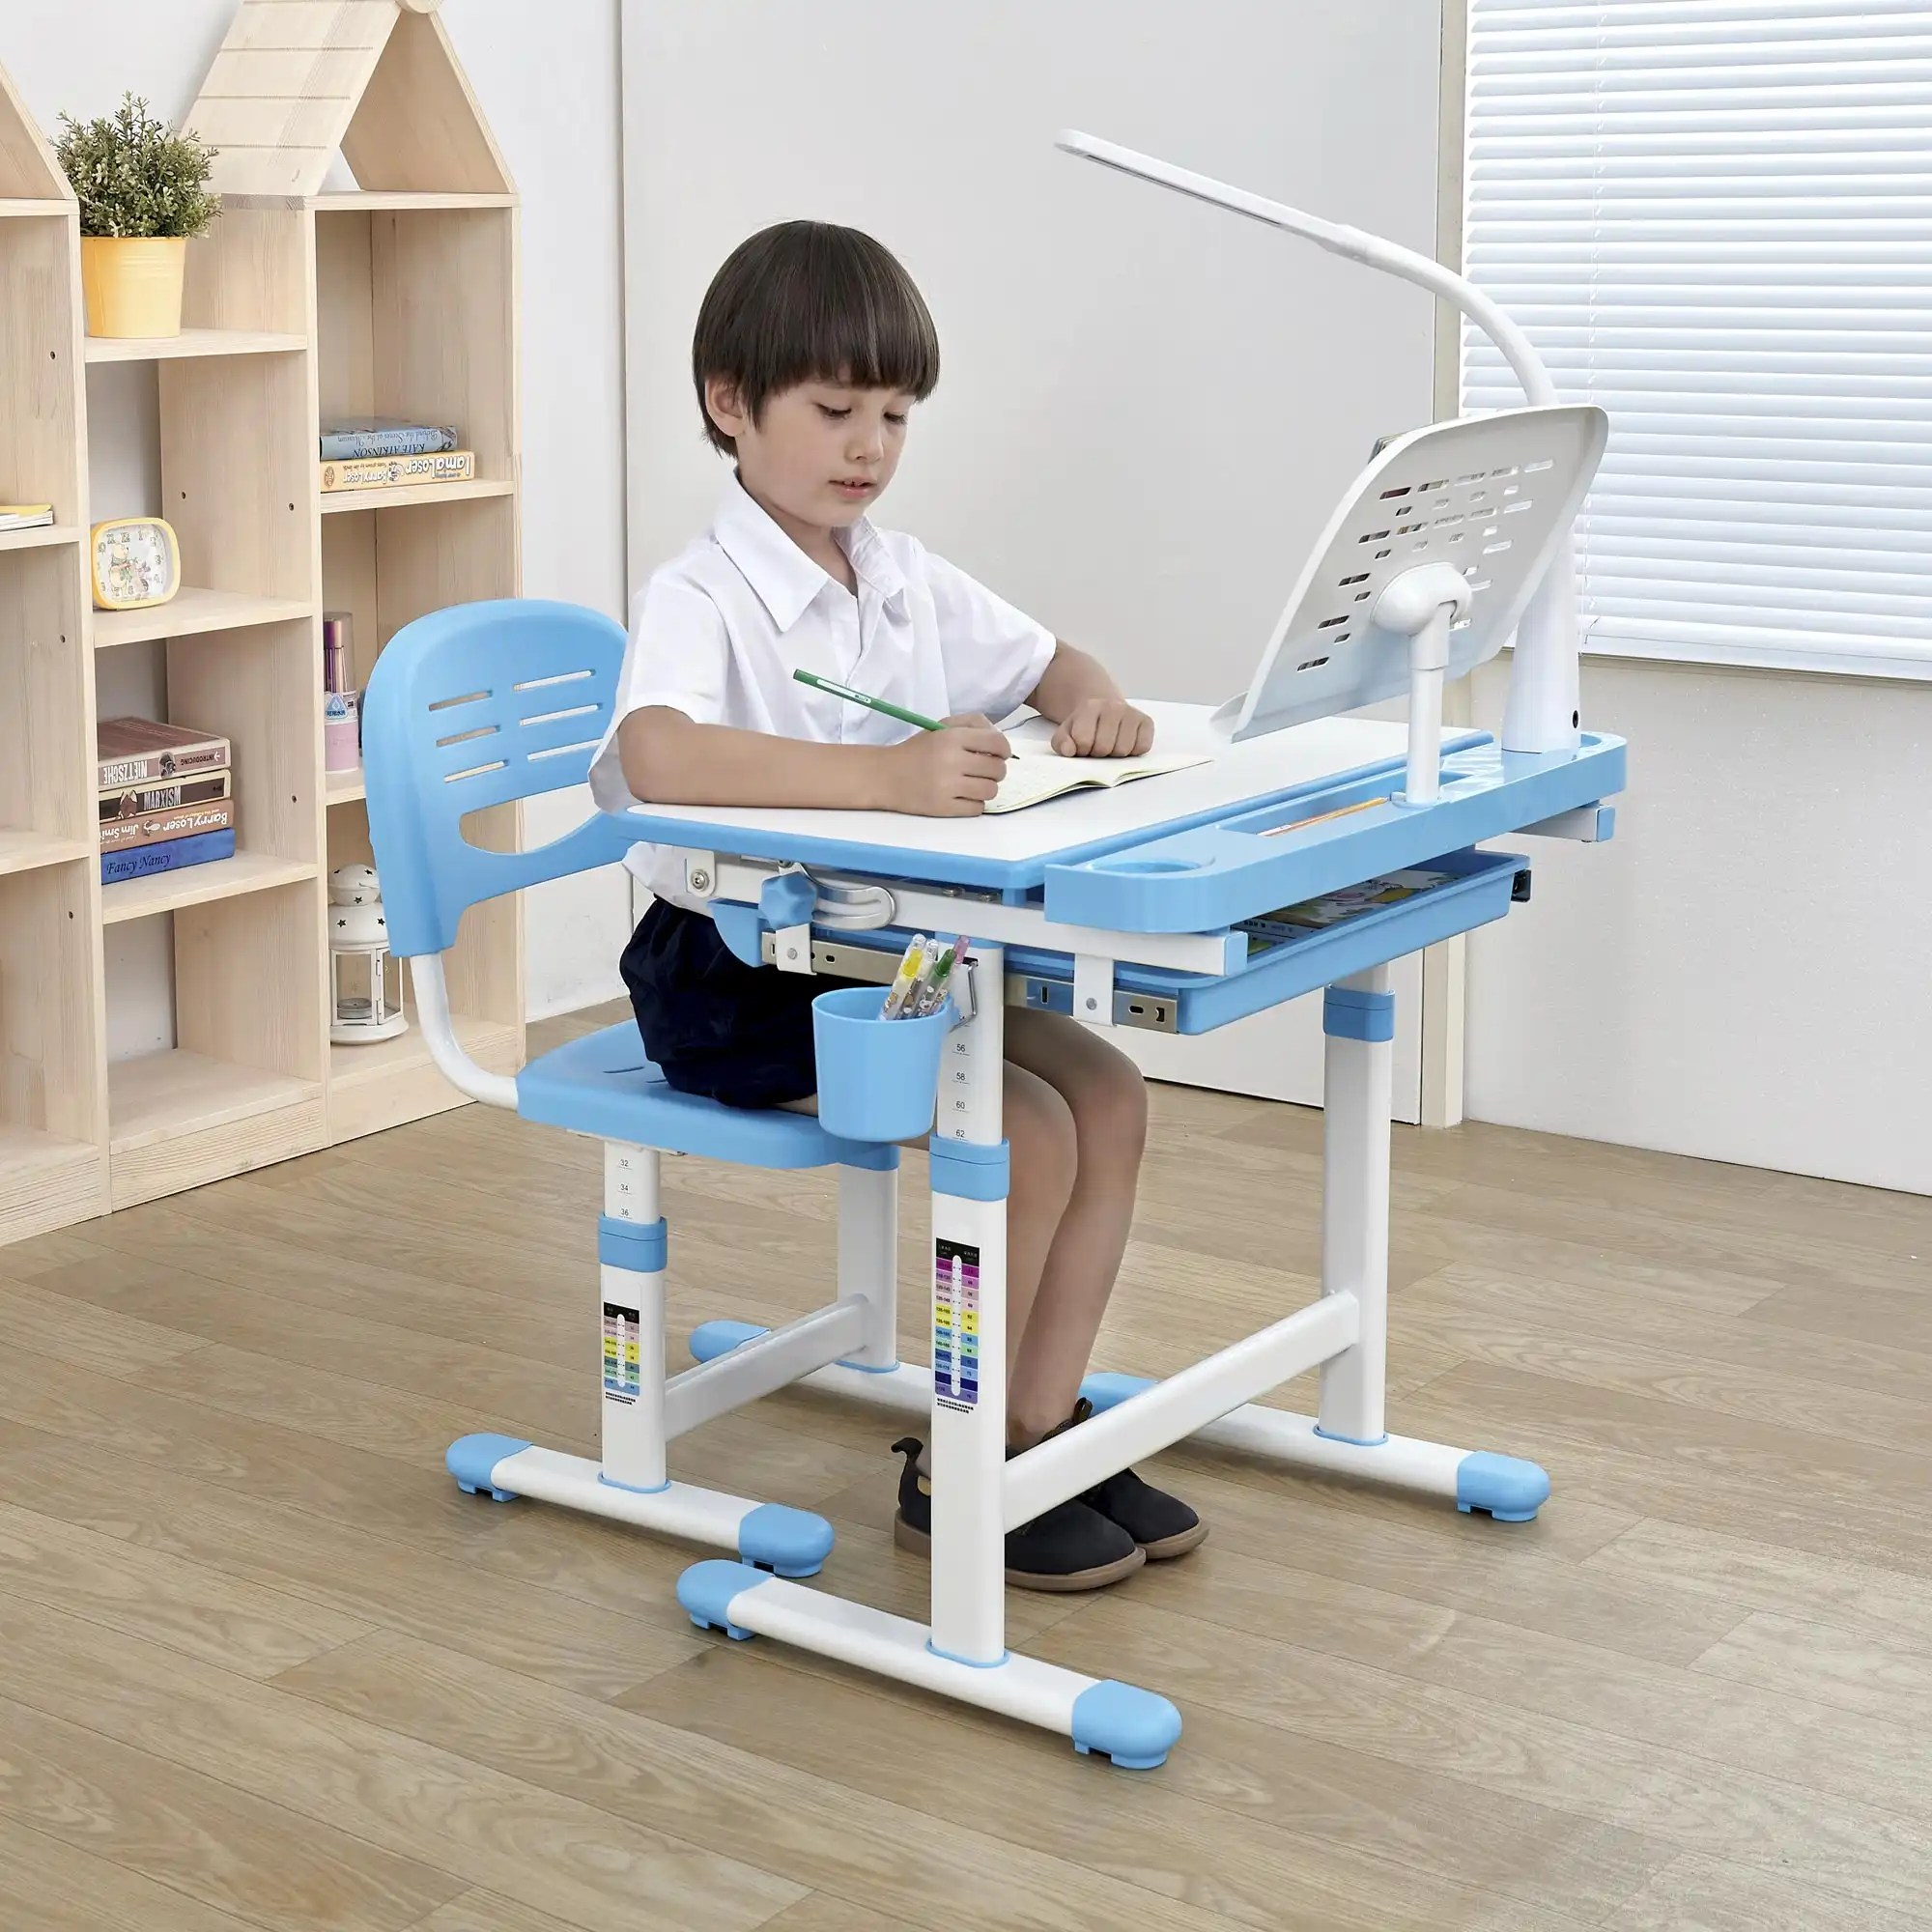 Ergonomic Reading Chair Best Desk Quality Children Desks Chairs Height